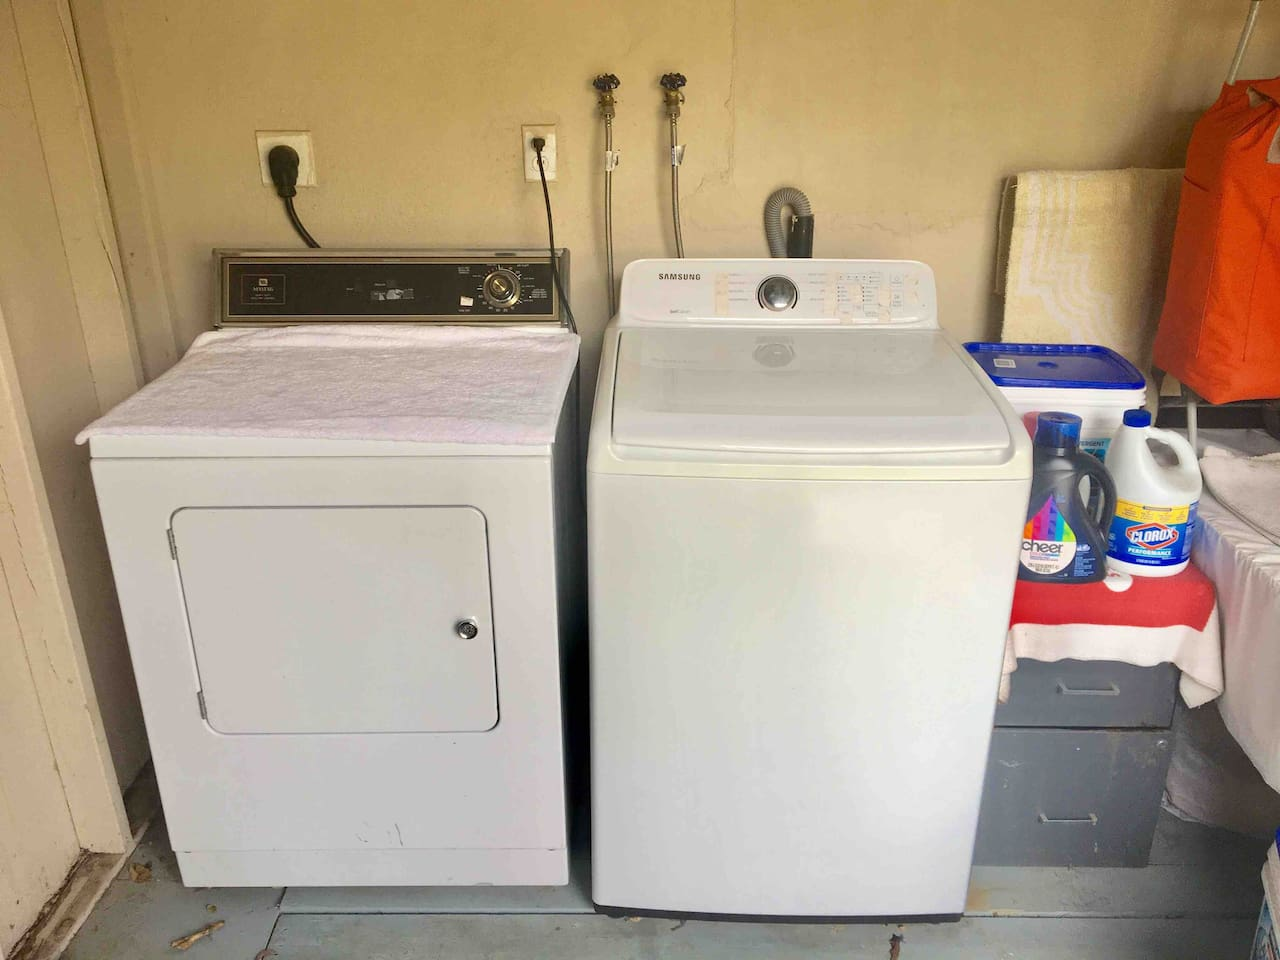 Laundry room,Washer/Dryer- Detergent and Clorox provided.